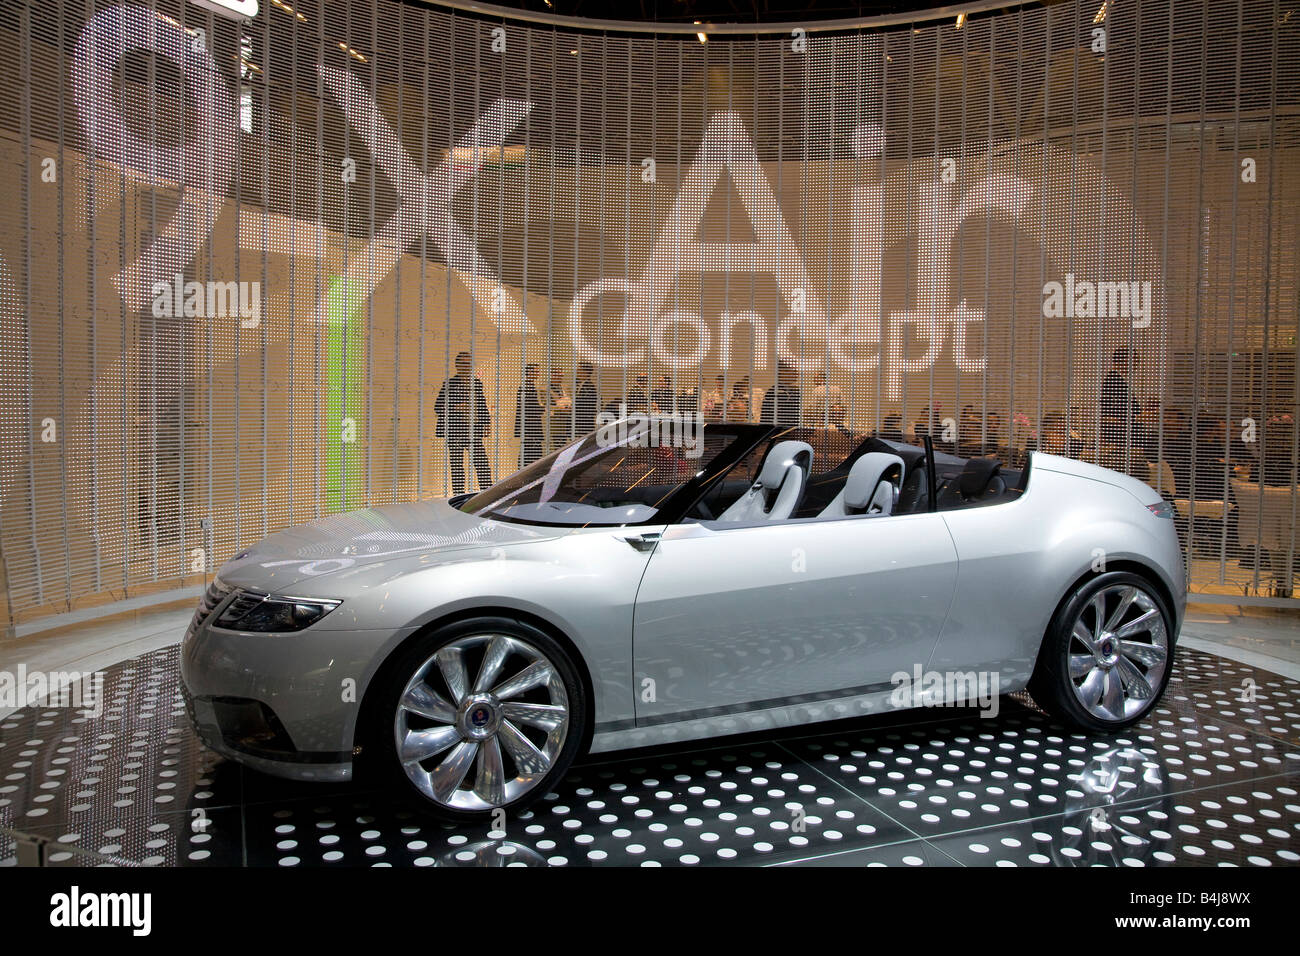 Saab 9-X Air Concept on show at a Motor Show 2008. The Mondial de l'Automobile. - Stock Image